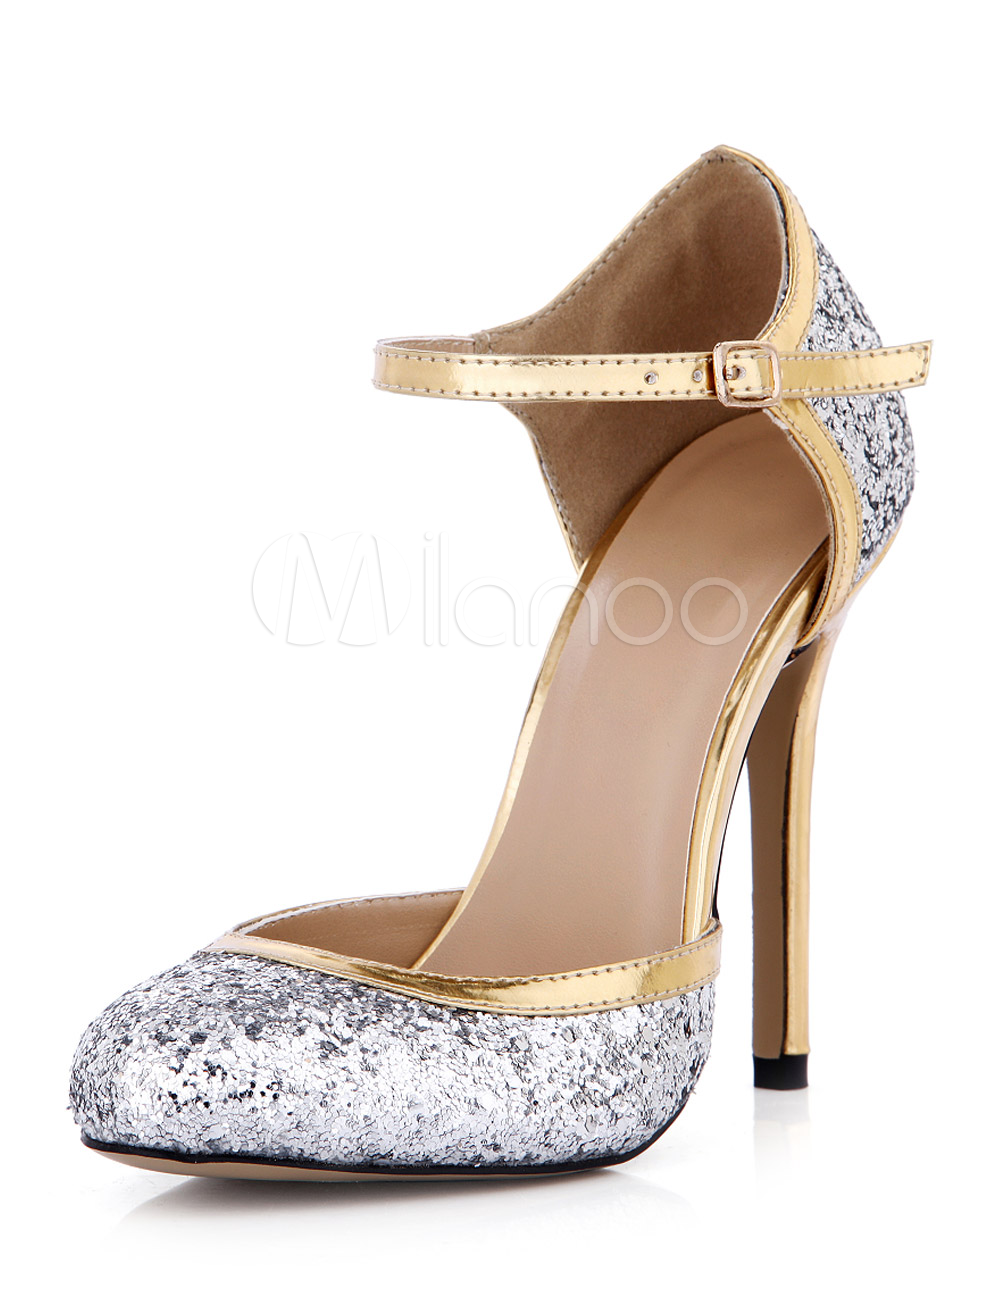 Buy Silver Sequined Cloth Round Toe Stiletto Heel Buckle Attractive Womens High Heels for $48.99 in Milanoo store